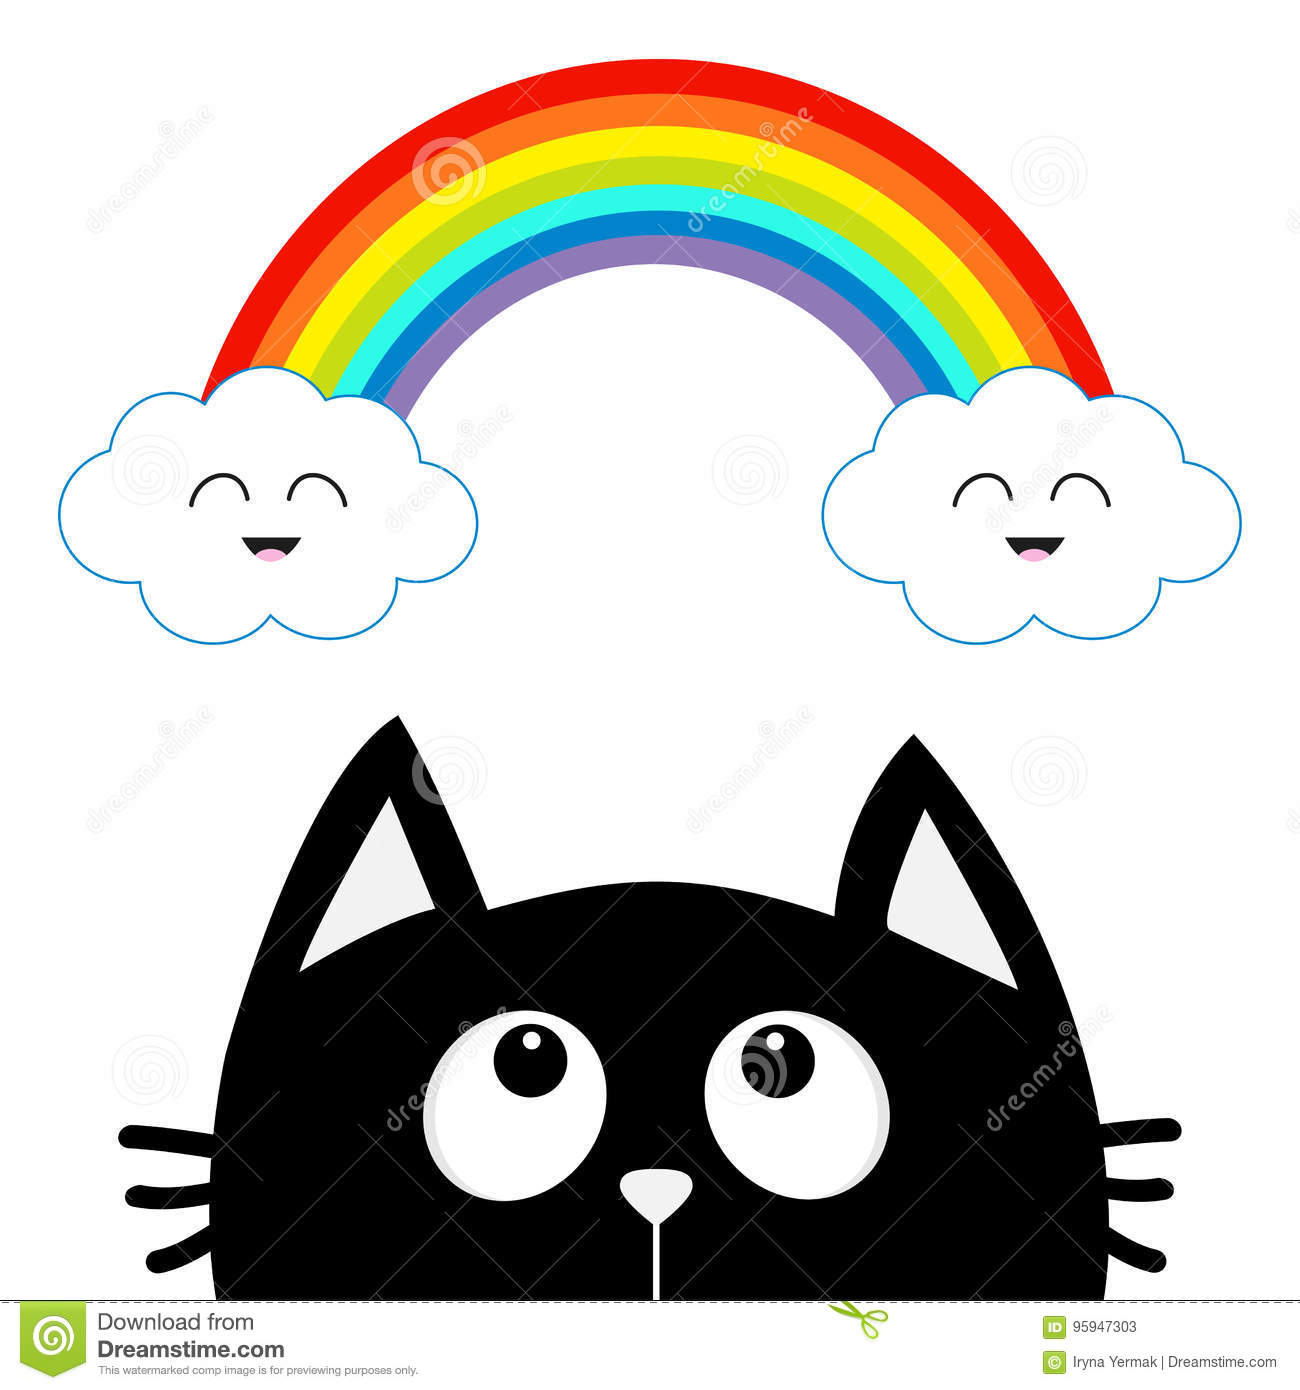 Cute Cloud Kawaii Face Vector Illustration | CartoonDealer ...